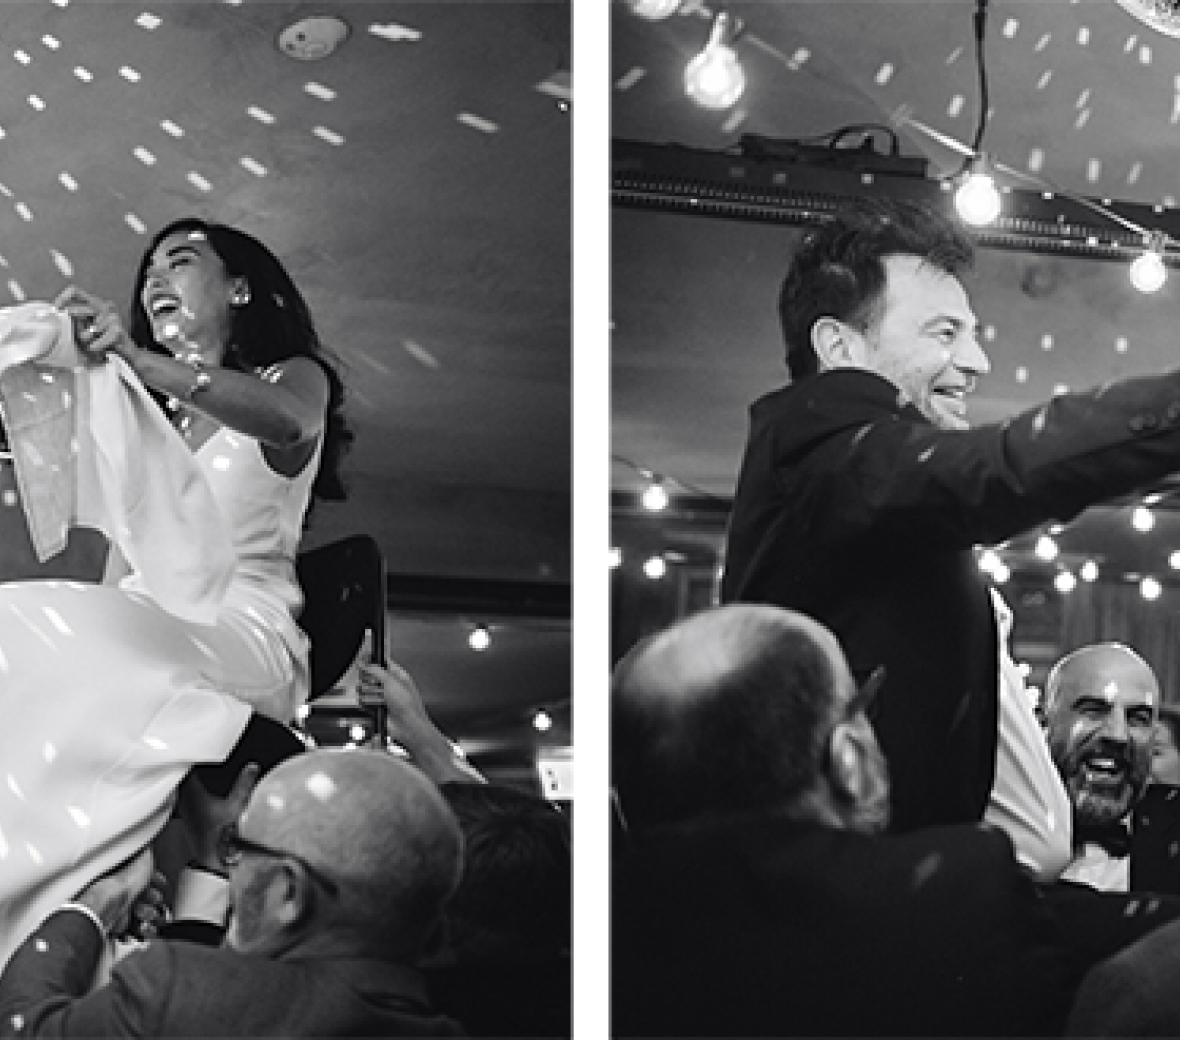 Black and white photo of a classy wedding celebration